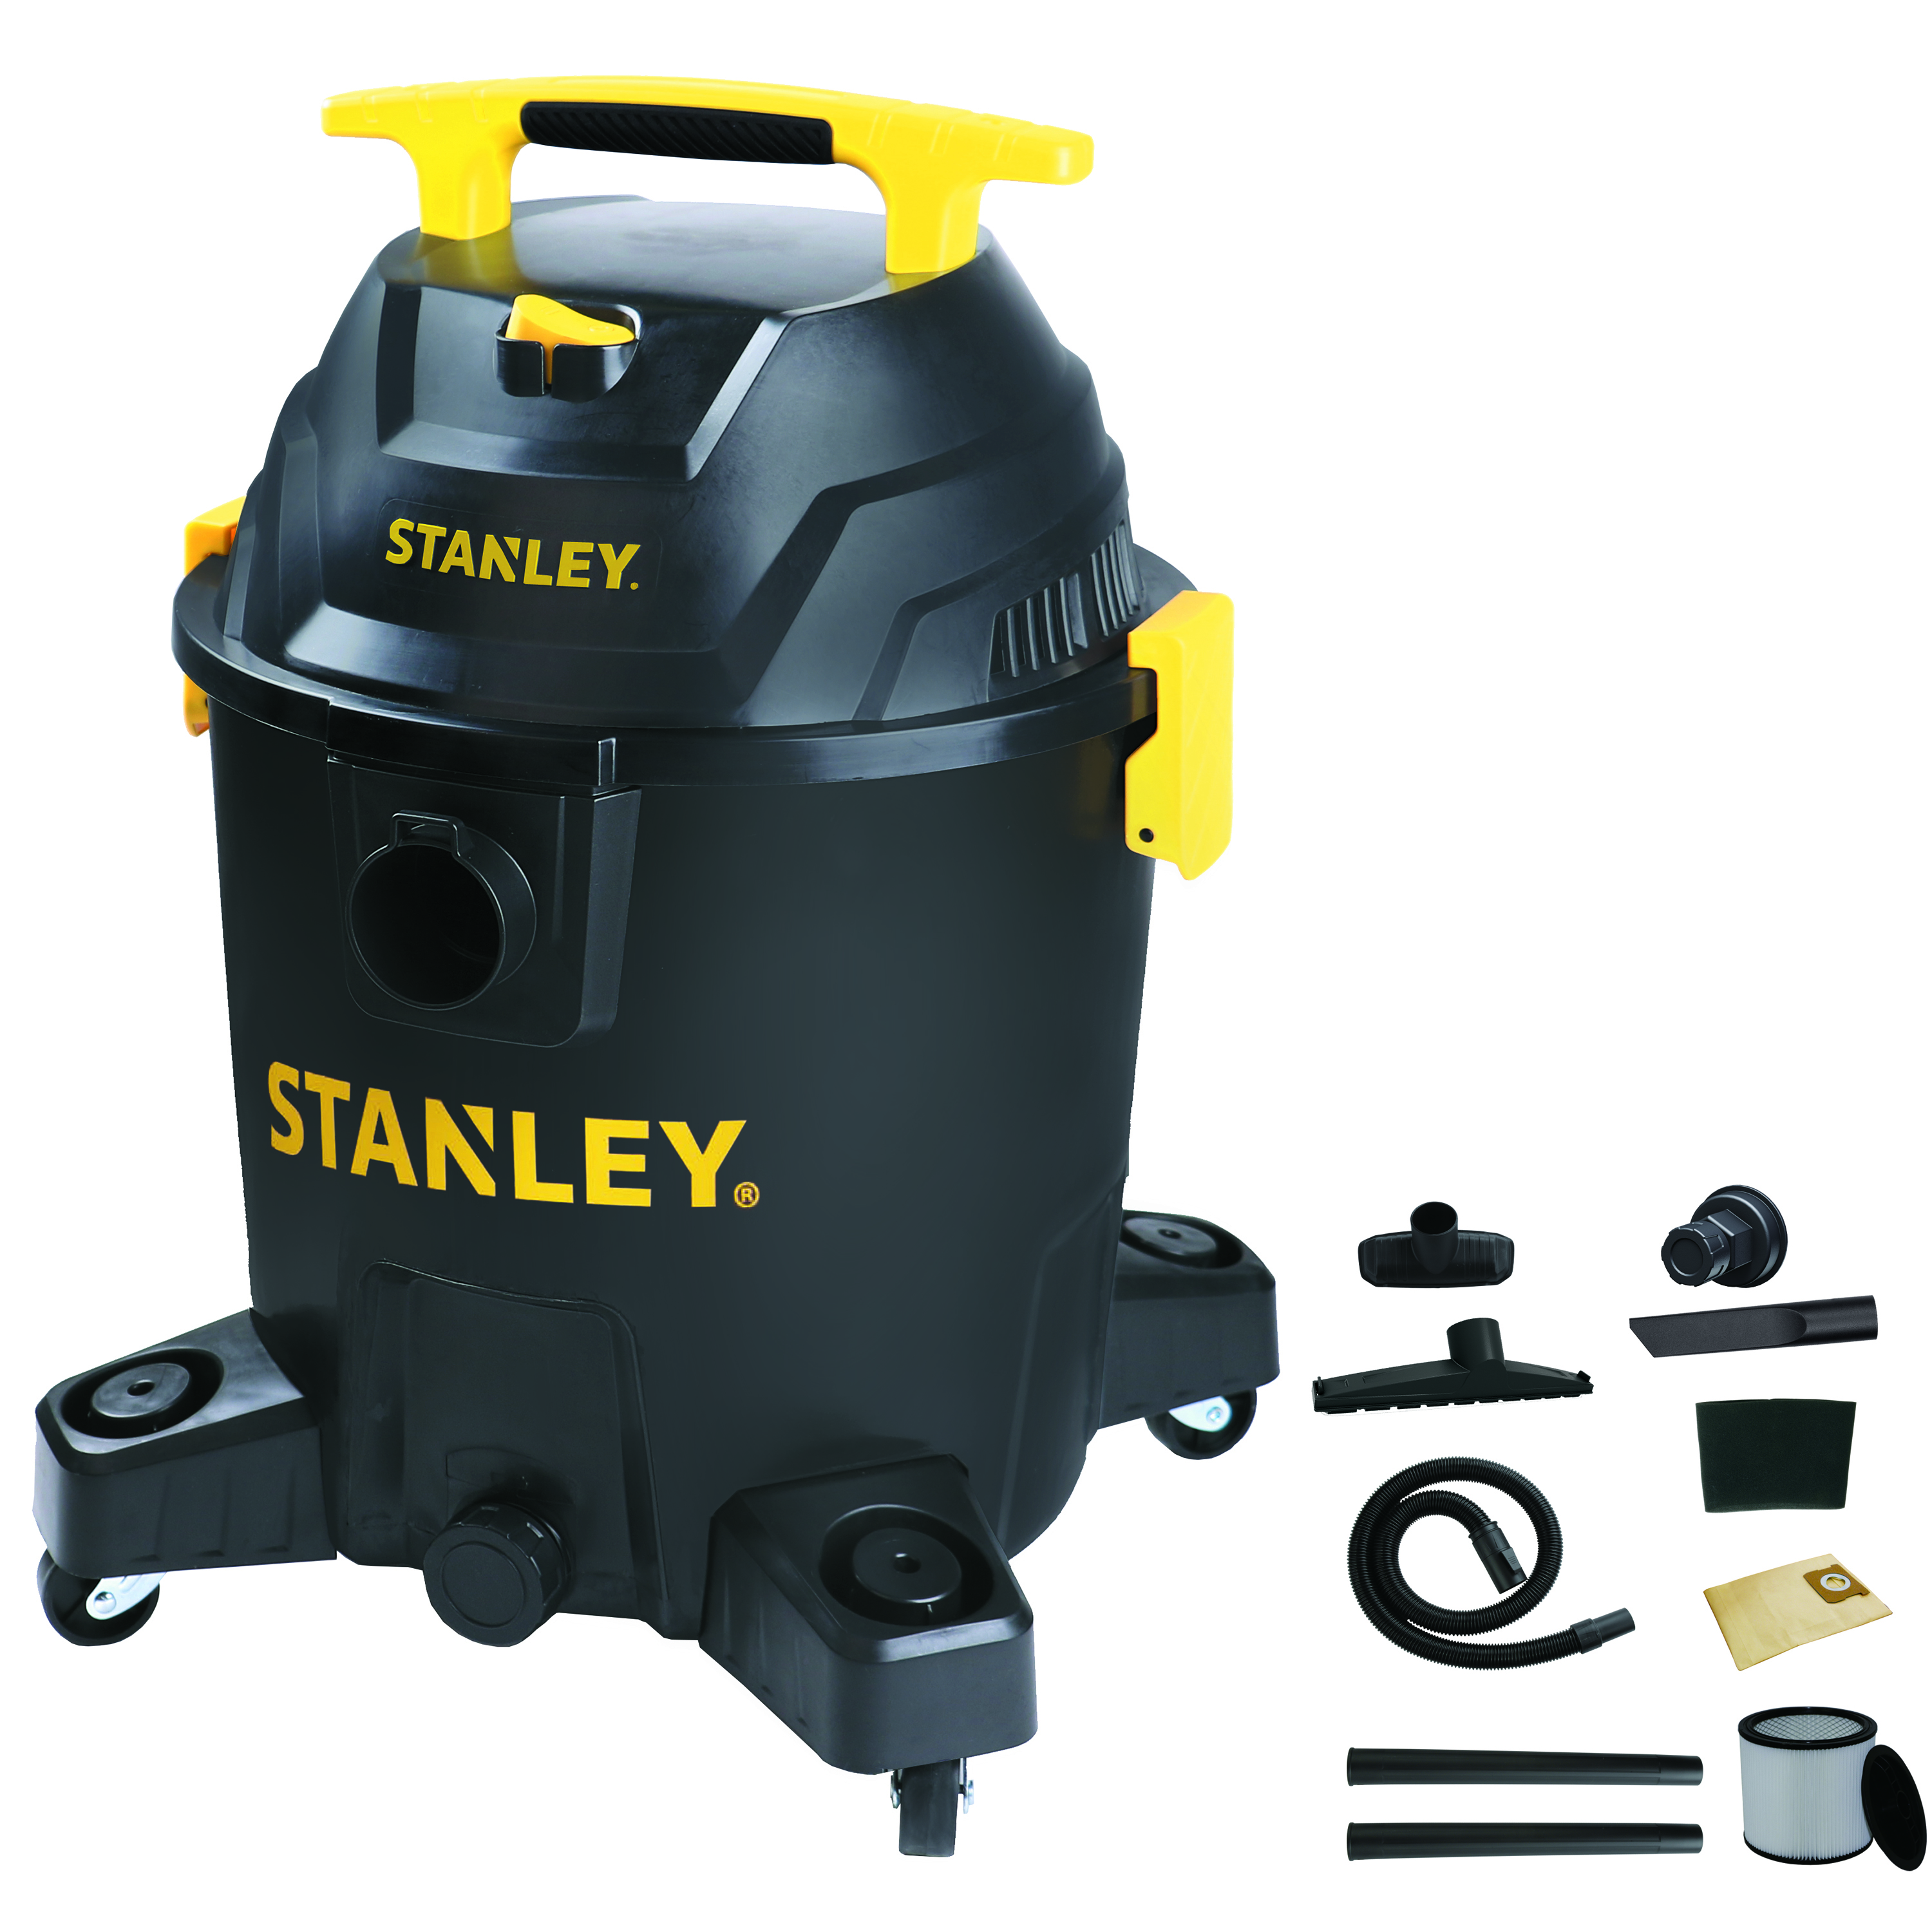 Stanley 10 Gallon, 6 Peak horse power Wet/dry Poly Vac